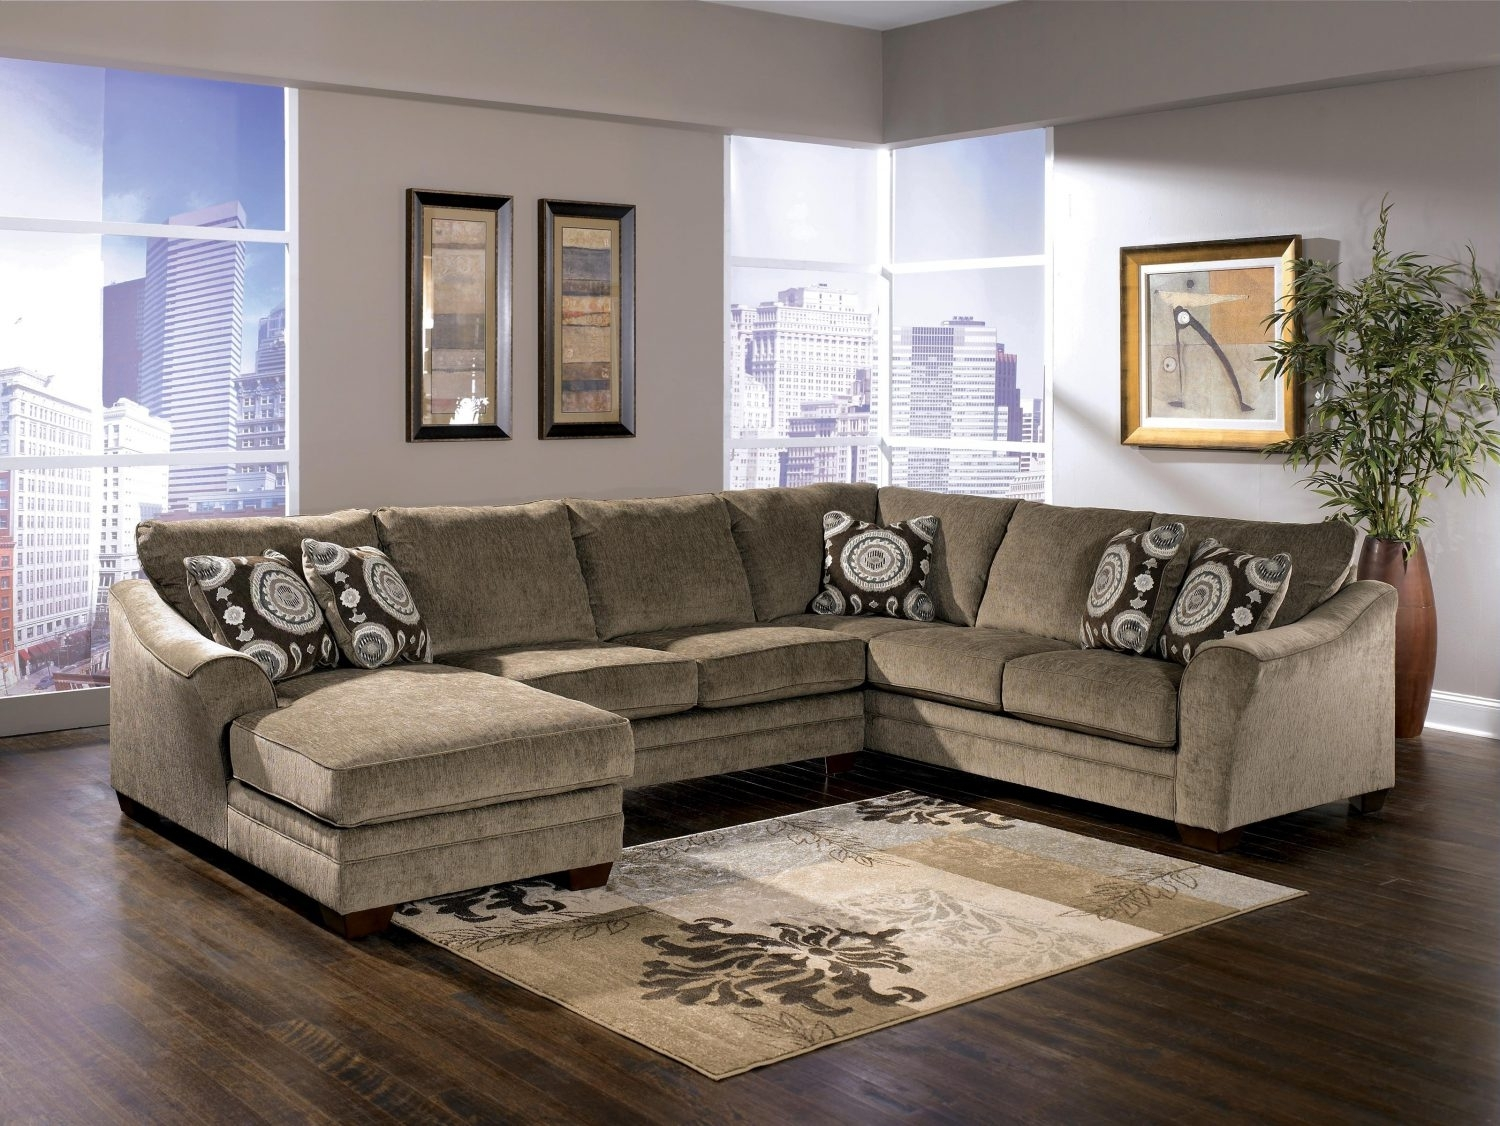 Creative Sectional Sofas Huntsville Al D13 For Your Designing Home For Huntsville Al Sectional Sofas (View 4 of 10)